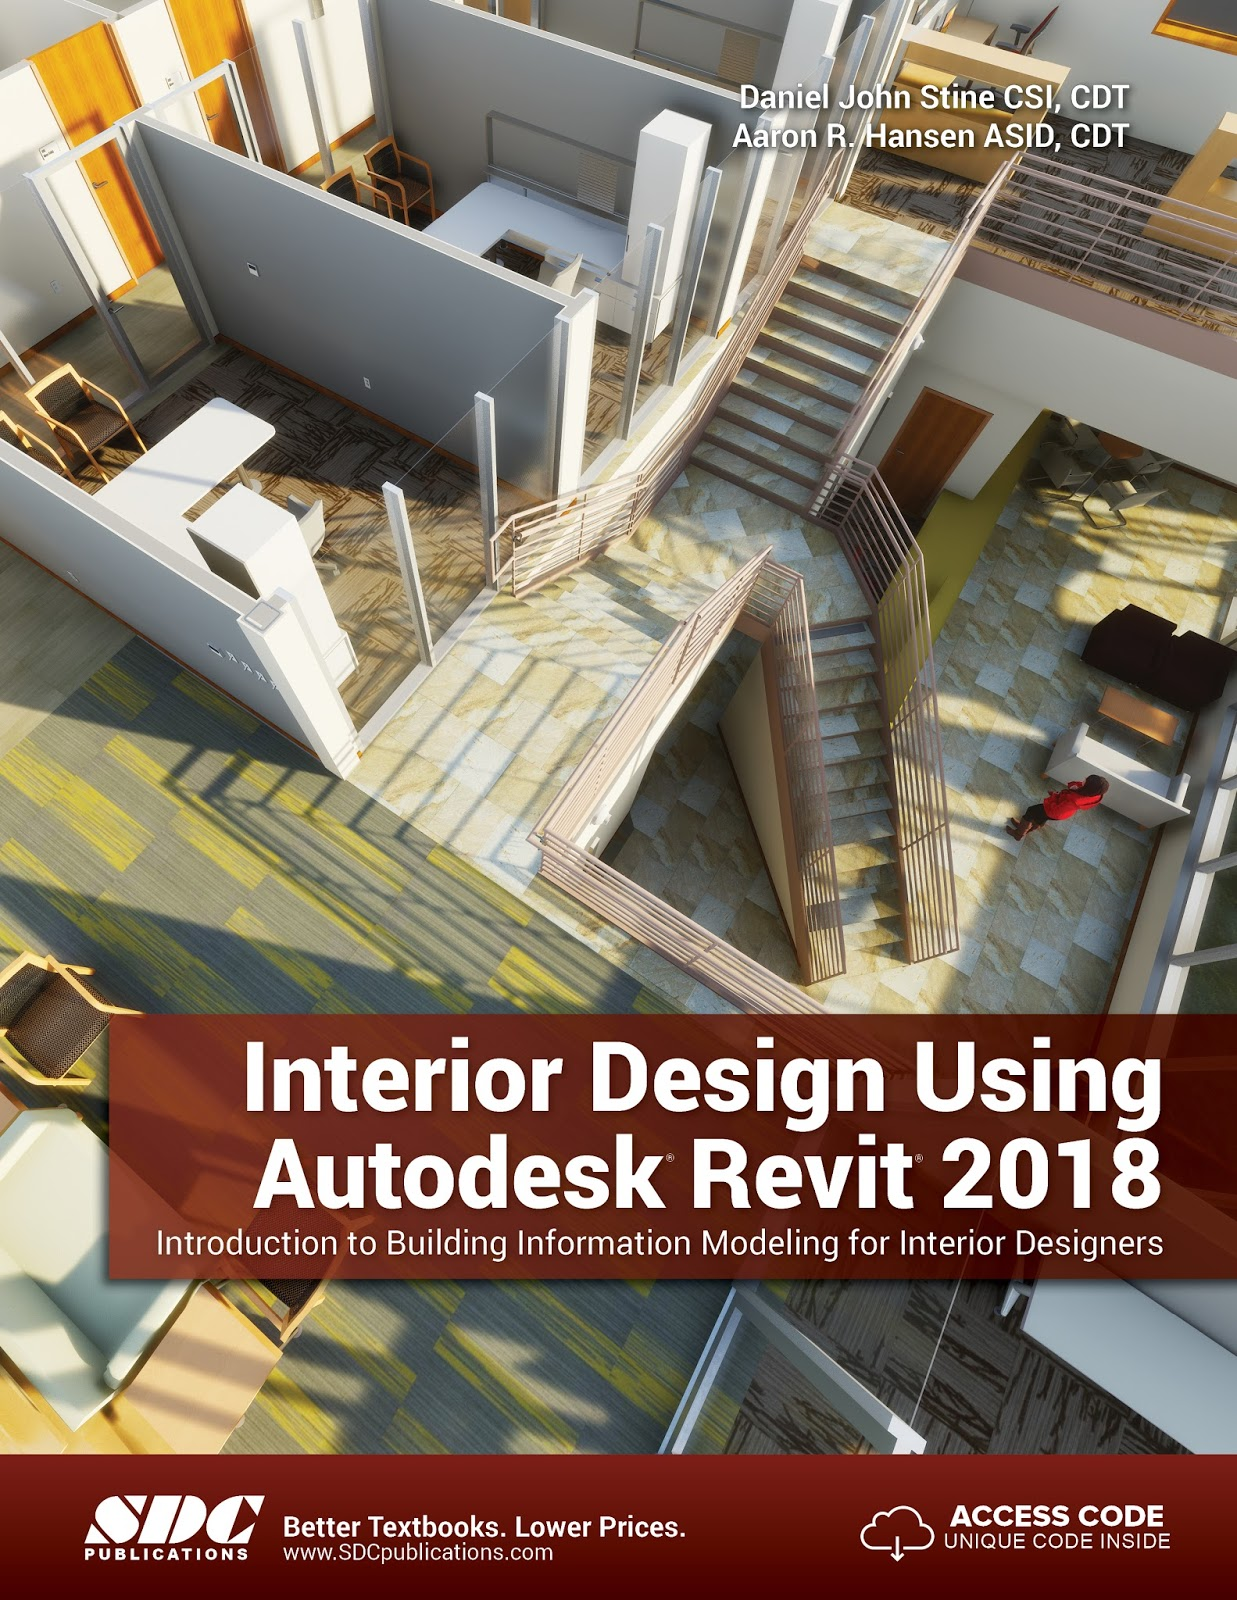 Interior Design Using Autodesk Revit 2018 Free Chapter Click Here PDF Sample Video Table Of Contents